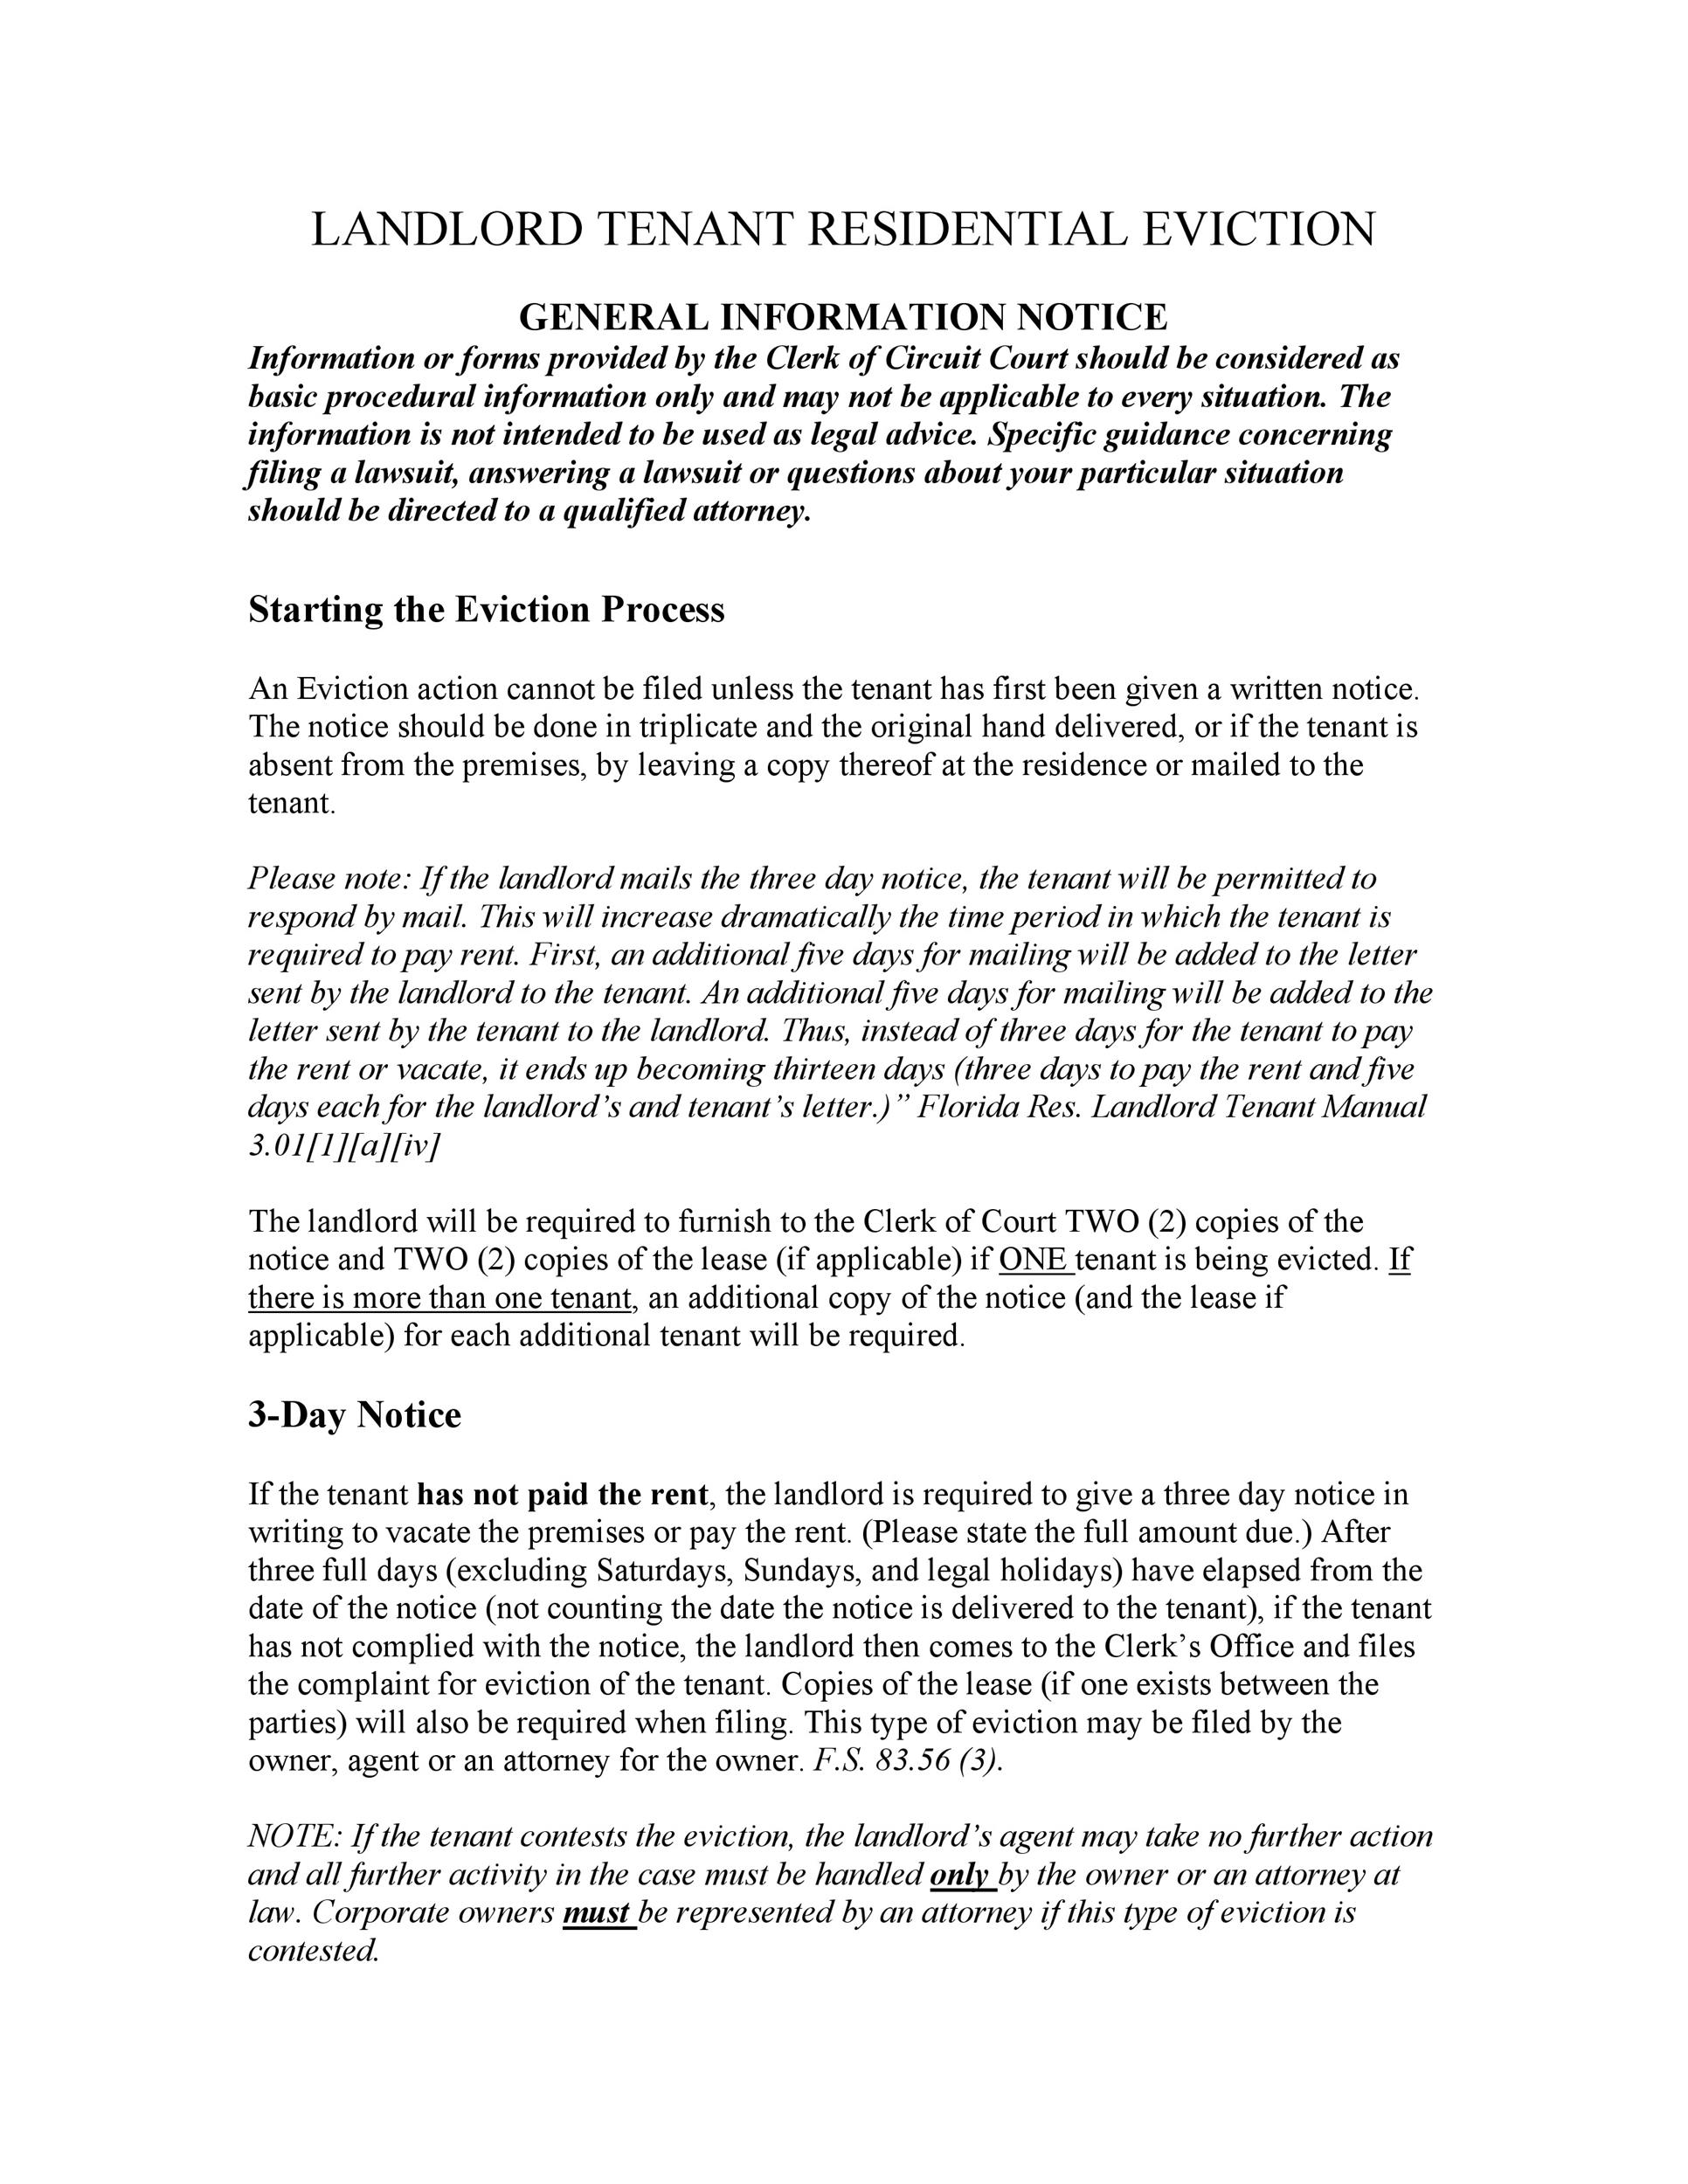 landlord tenant residential eviction - Termination Letter For Tenant From Landlord